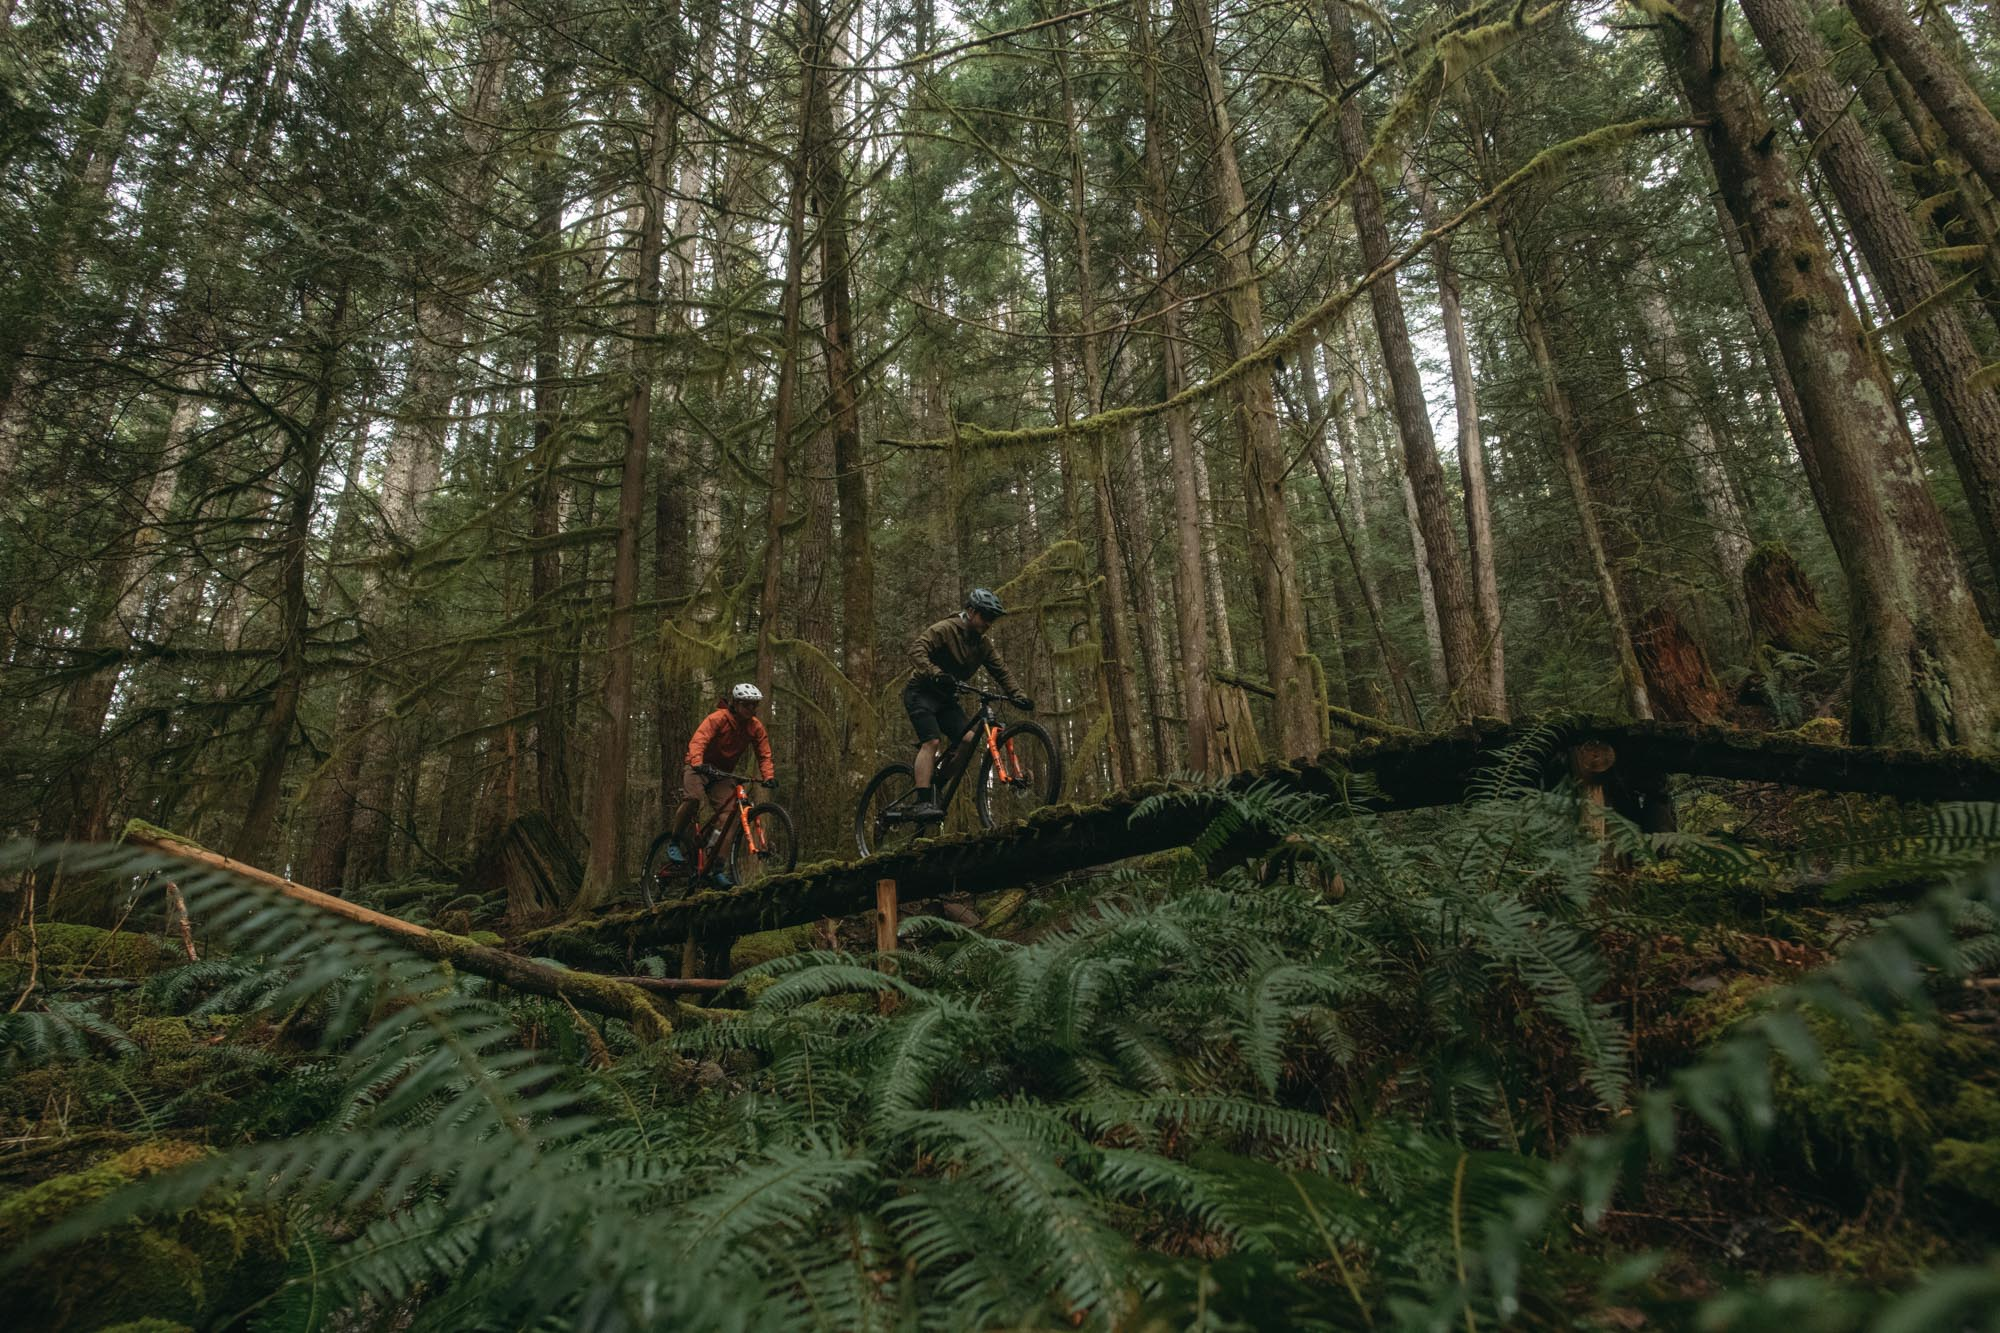 Felix Burke and Jesse Melamed ride the Element in Squamish, BC.